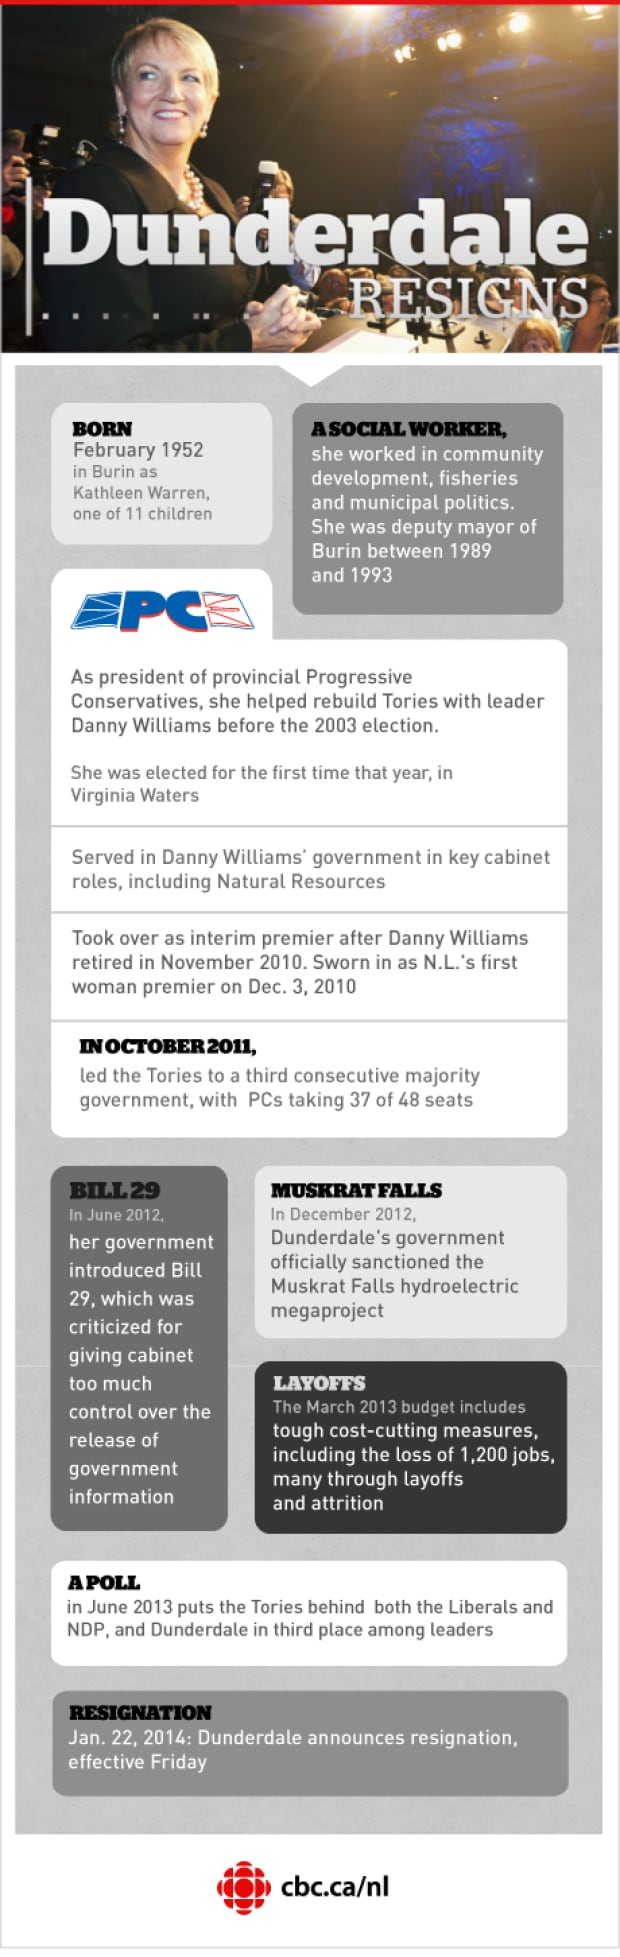 Dunderdale resigns infographic